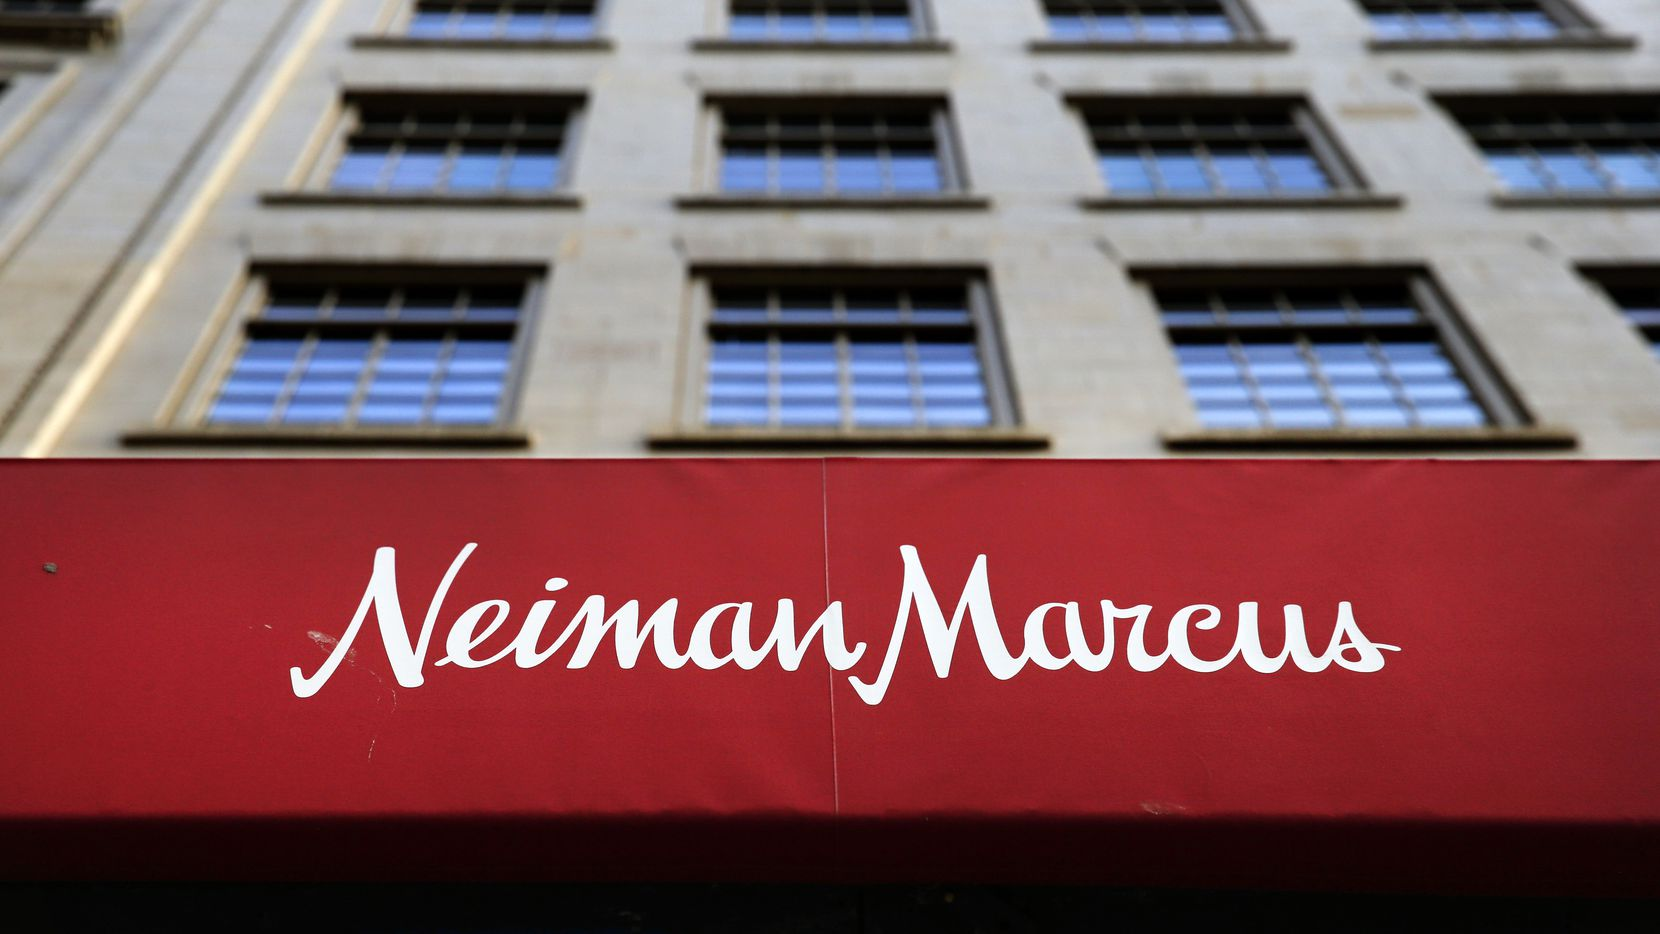 Neiman Marcus officially exited from its Chapter 11 bankruptcy reorganization in September.